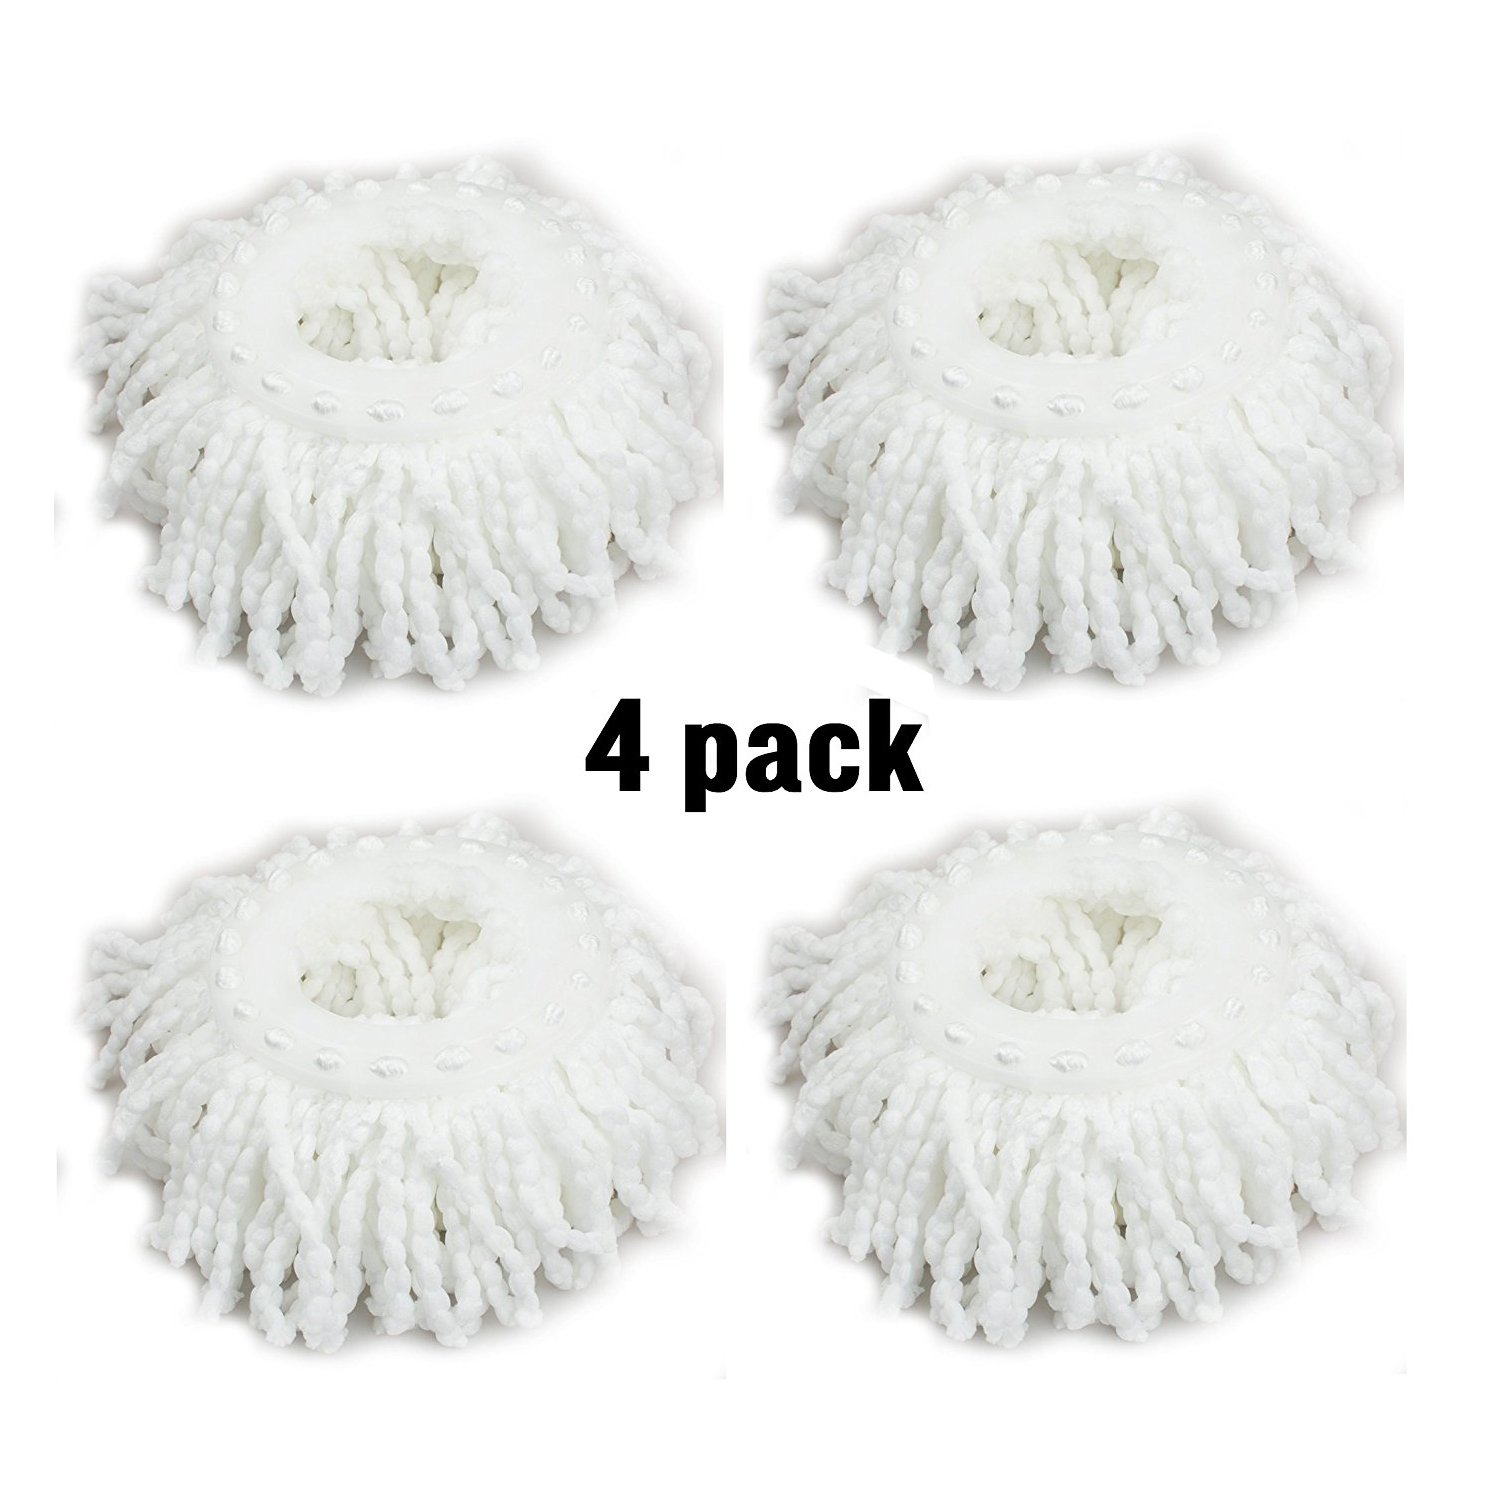 Universal Mop Head Replacement Pack Of 4, GFEU Round Microfiber 360 degree Refill Magic Mop Head Spin Mop head Fit for Other Rotating Mop System, Ultra Absorbent & Machine Washable